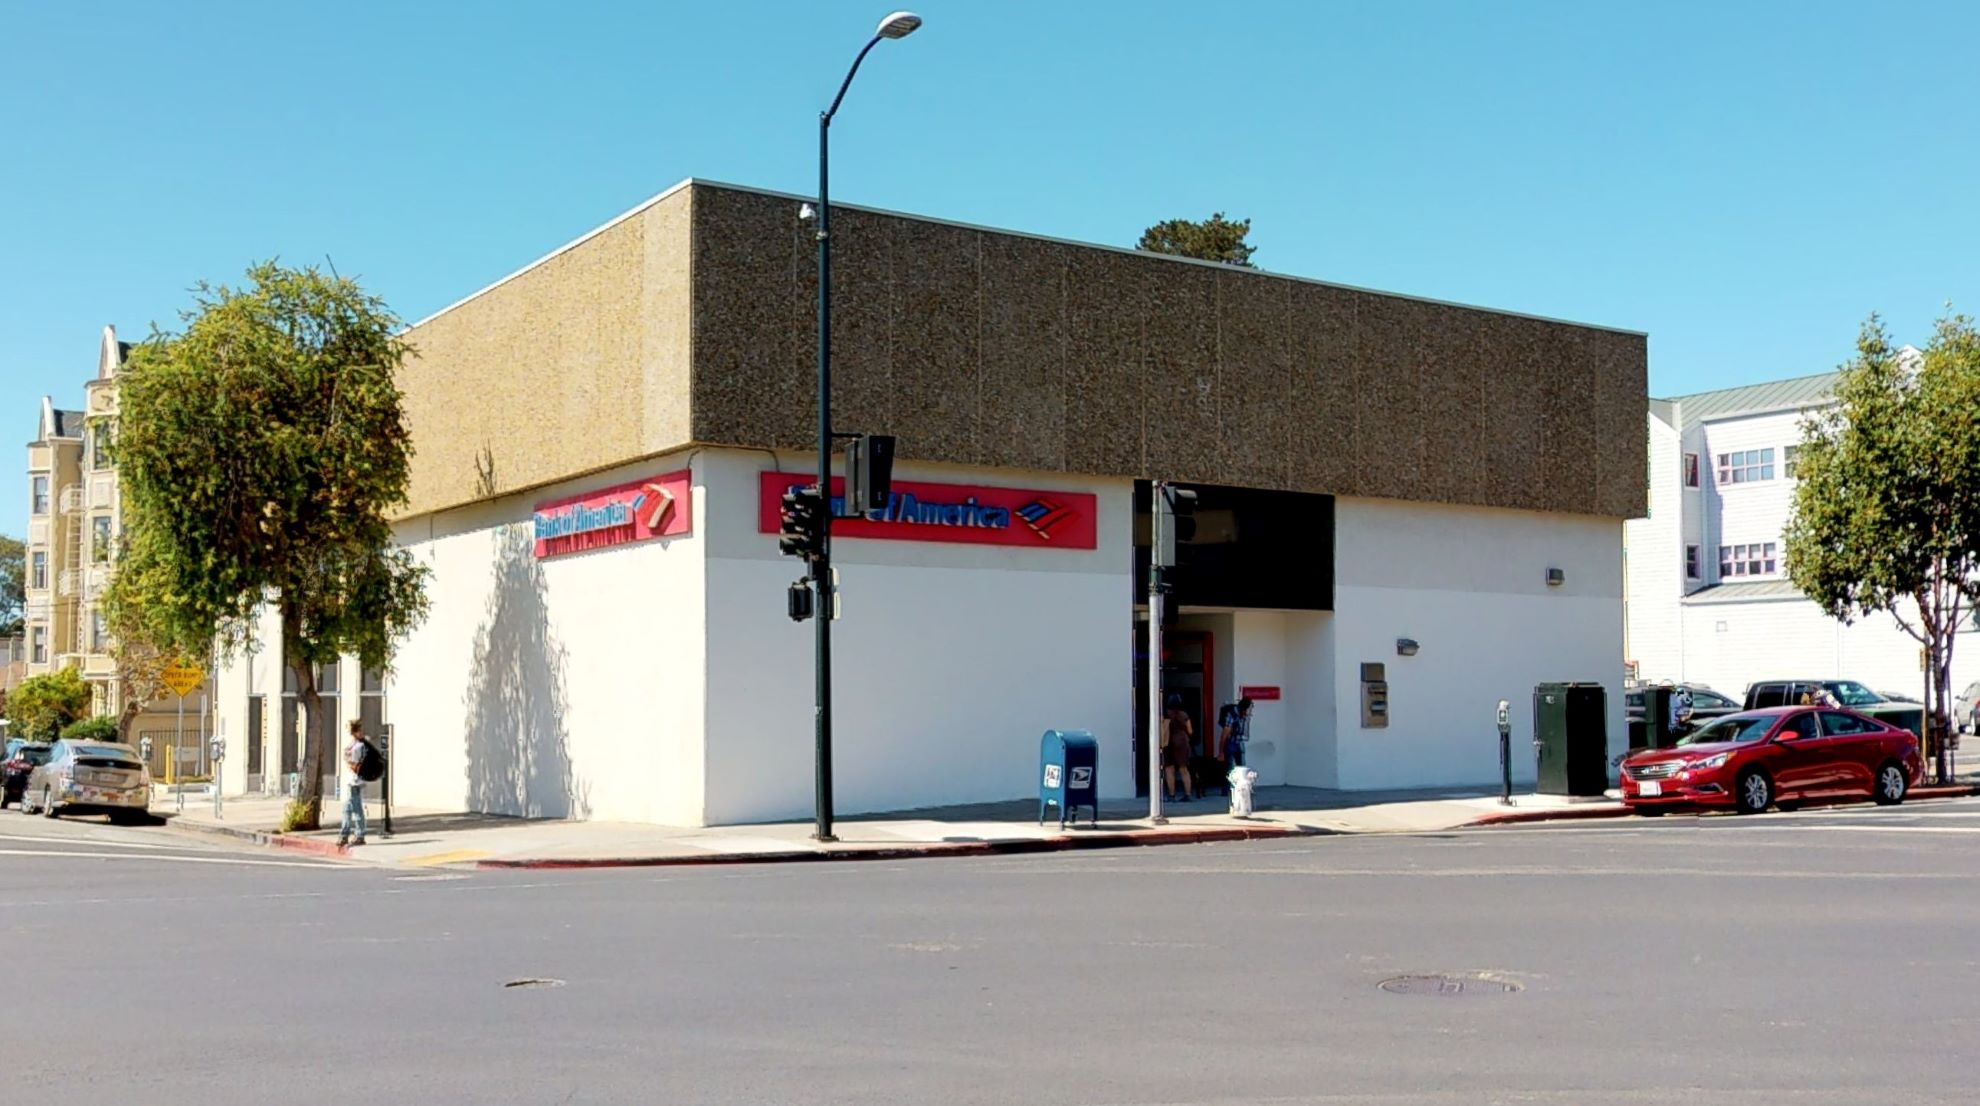 Bank of America financial center with walk-up ATM | 6201 College Ave, Oakland, CA 94618